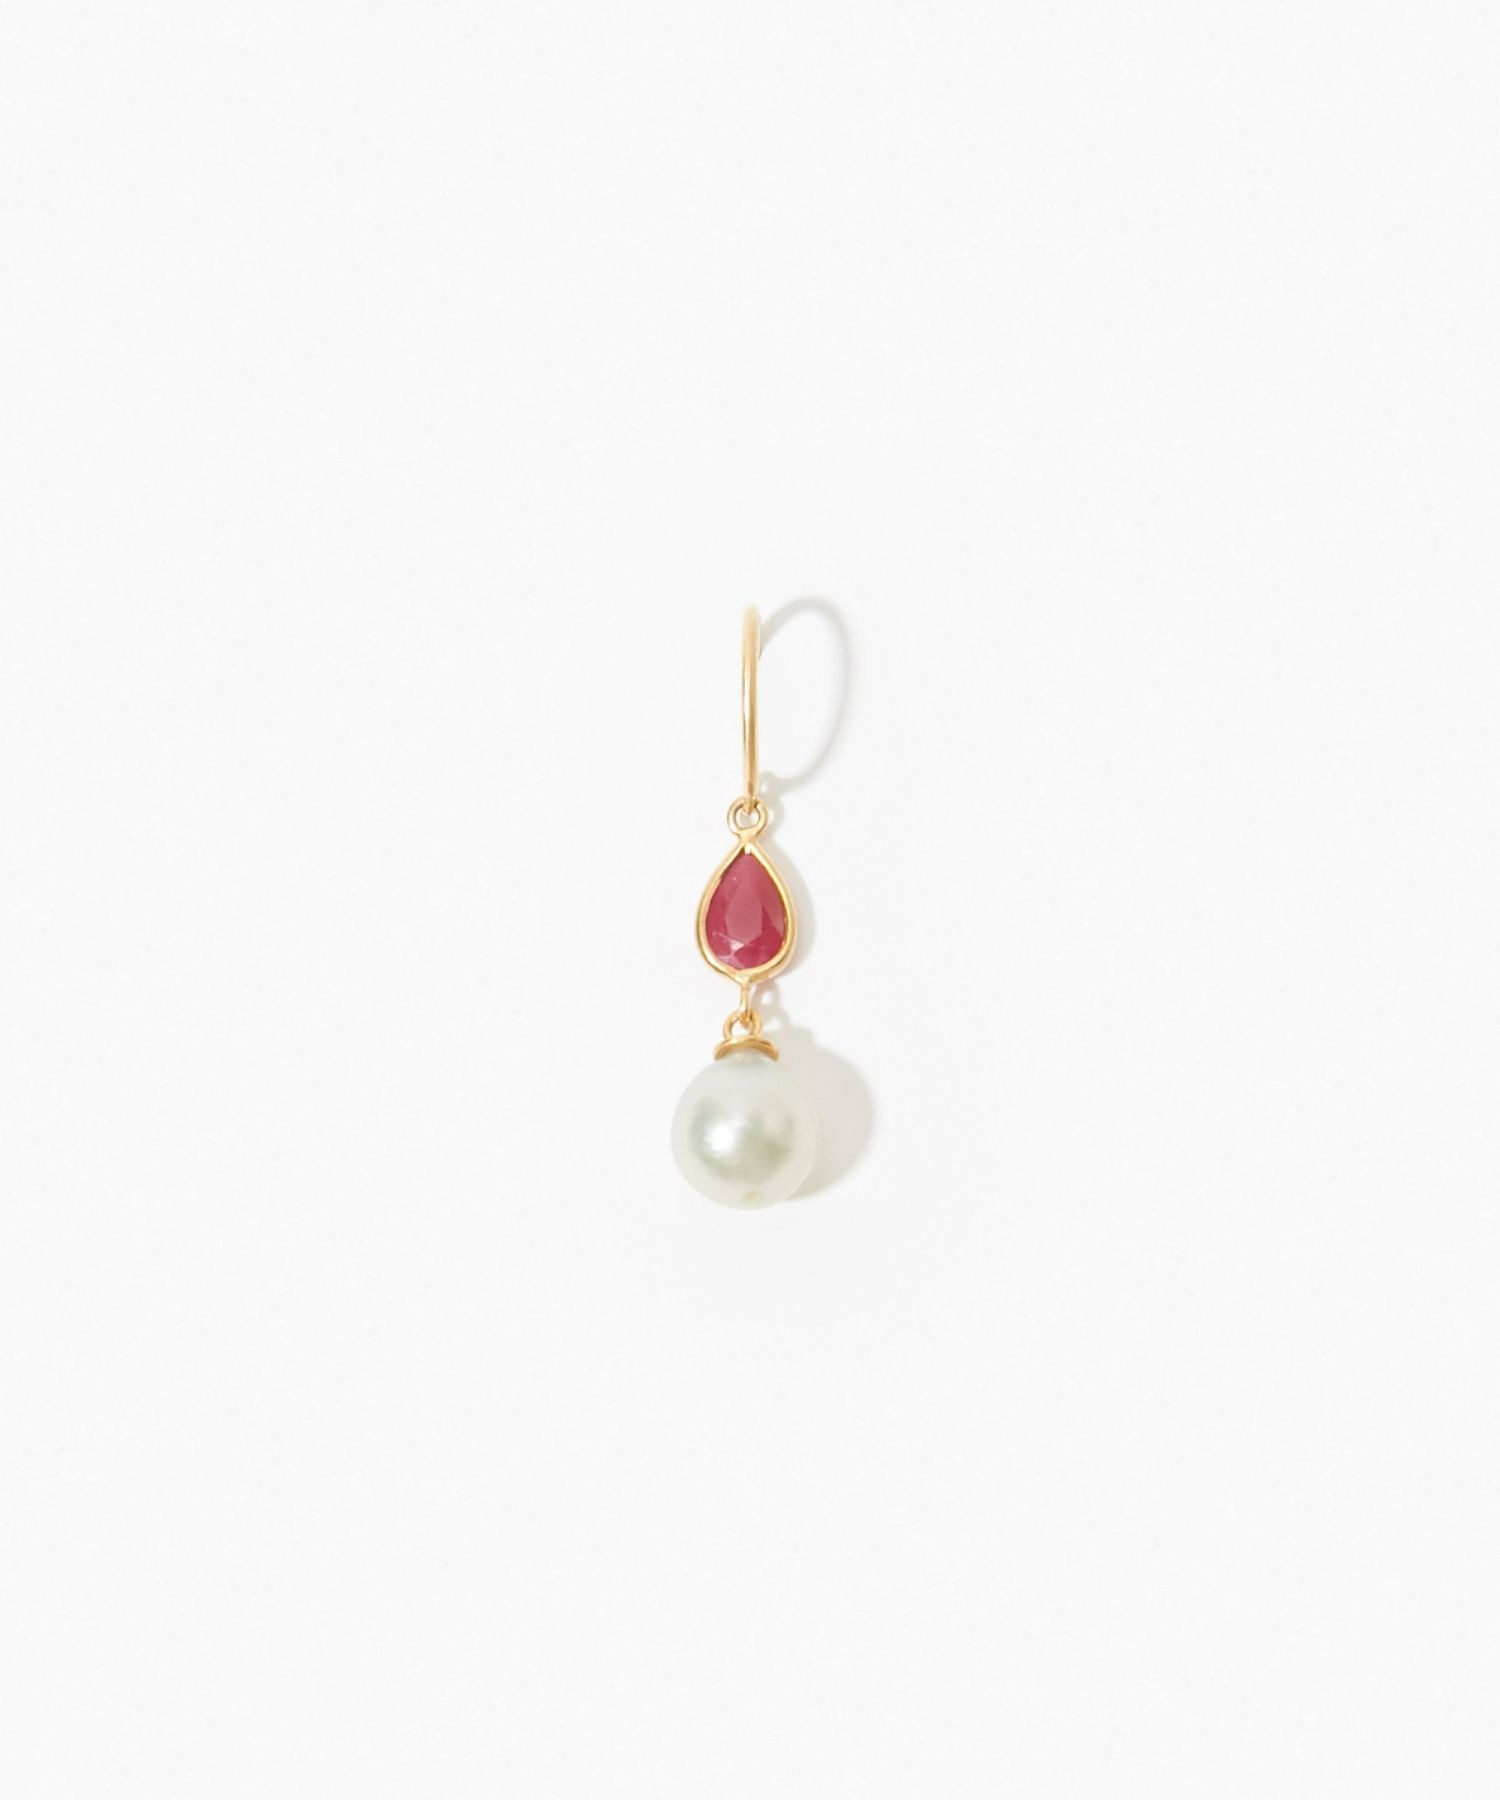 [philia] K10 akoya and pear-shaped ruby pierced earring